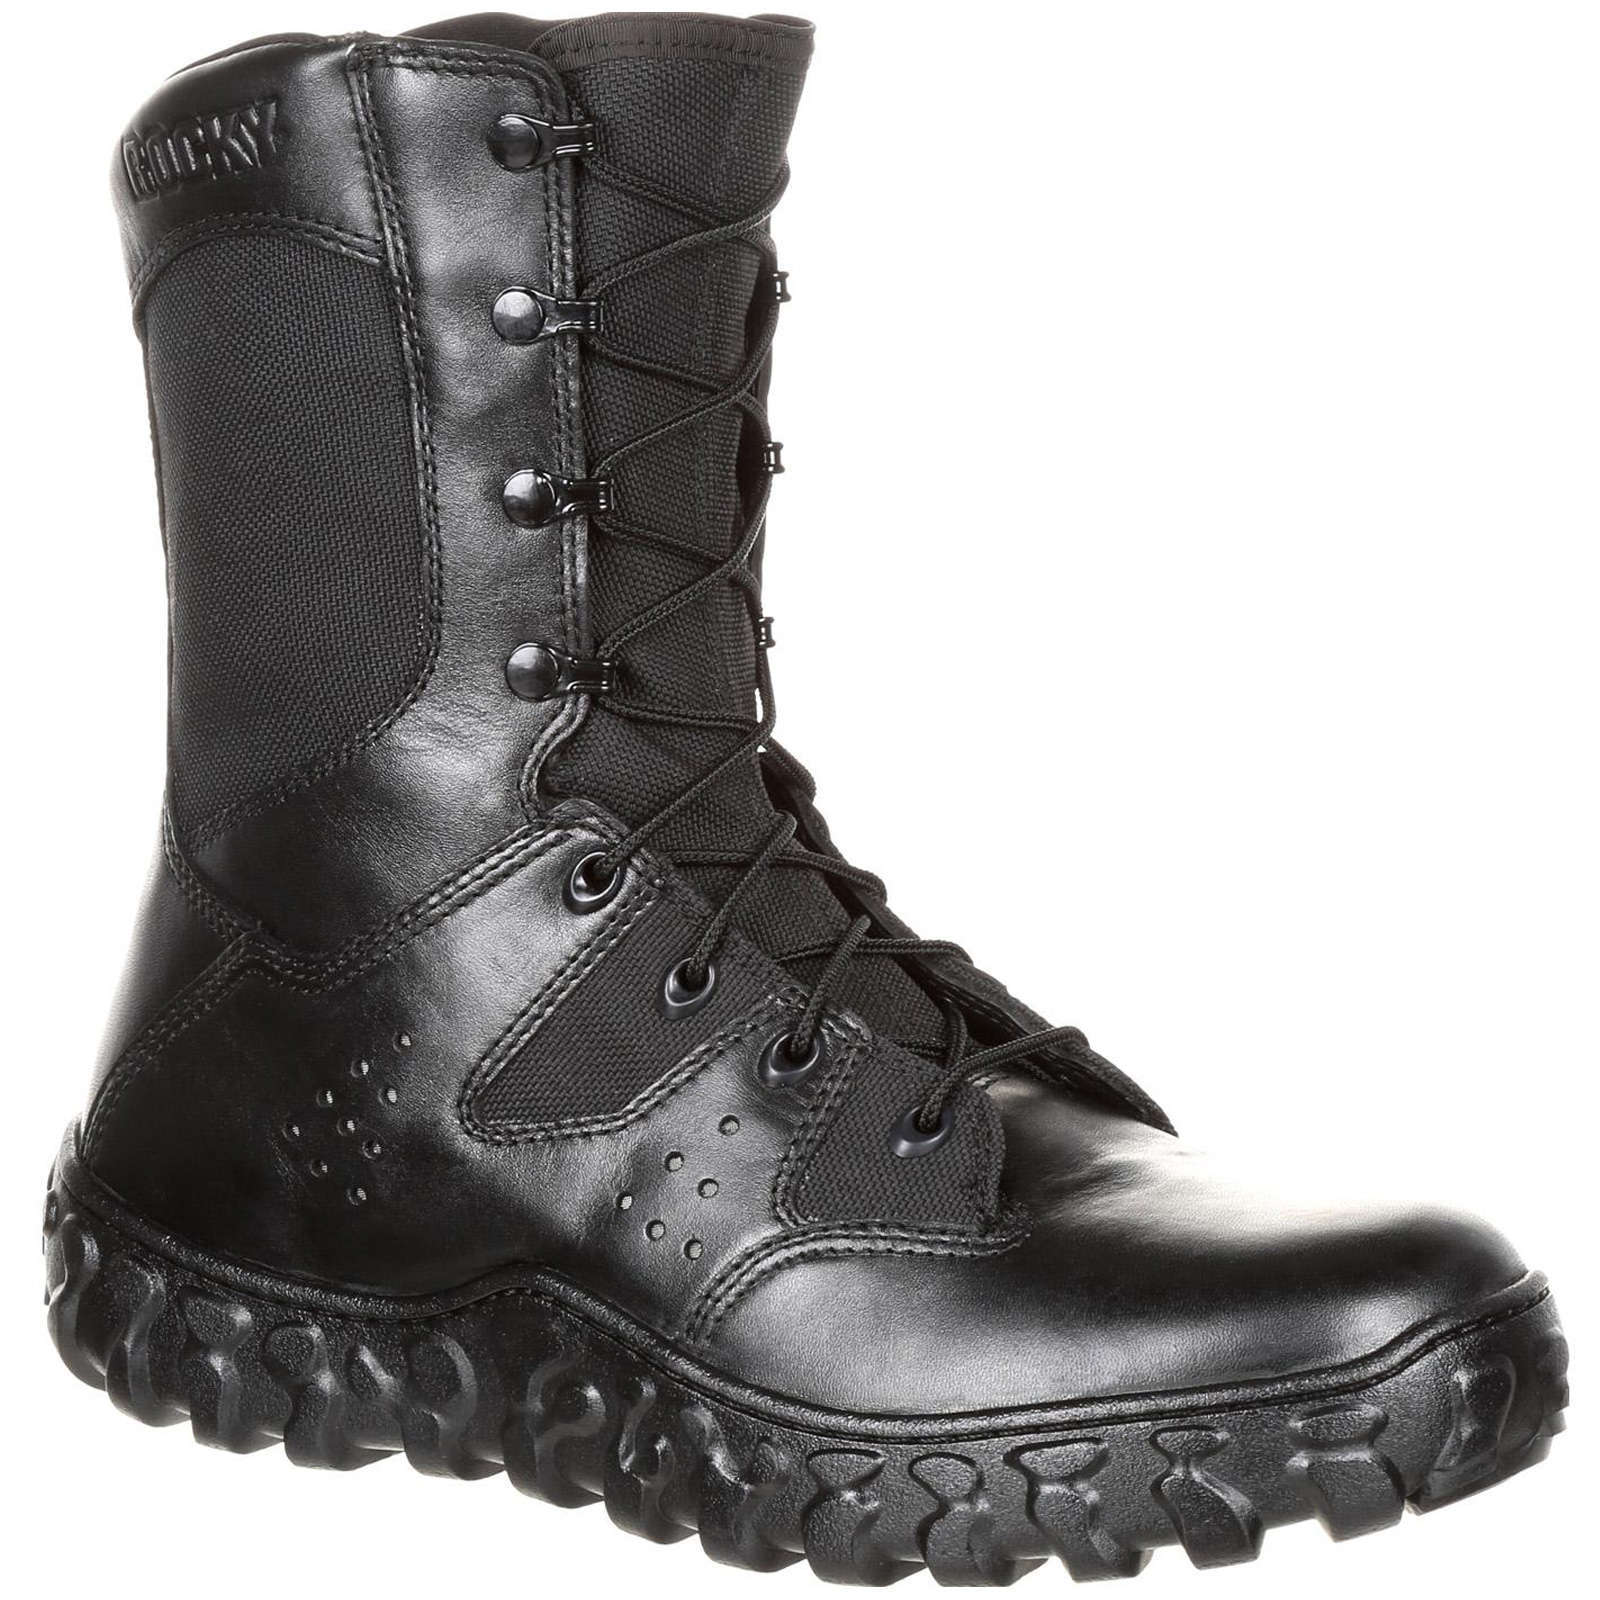 535842723cb Details about Rocky S2V Predator Duty Military Black Triple Stitched USA  Made Boots Premium